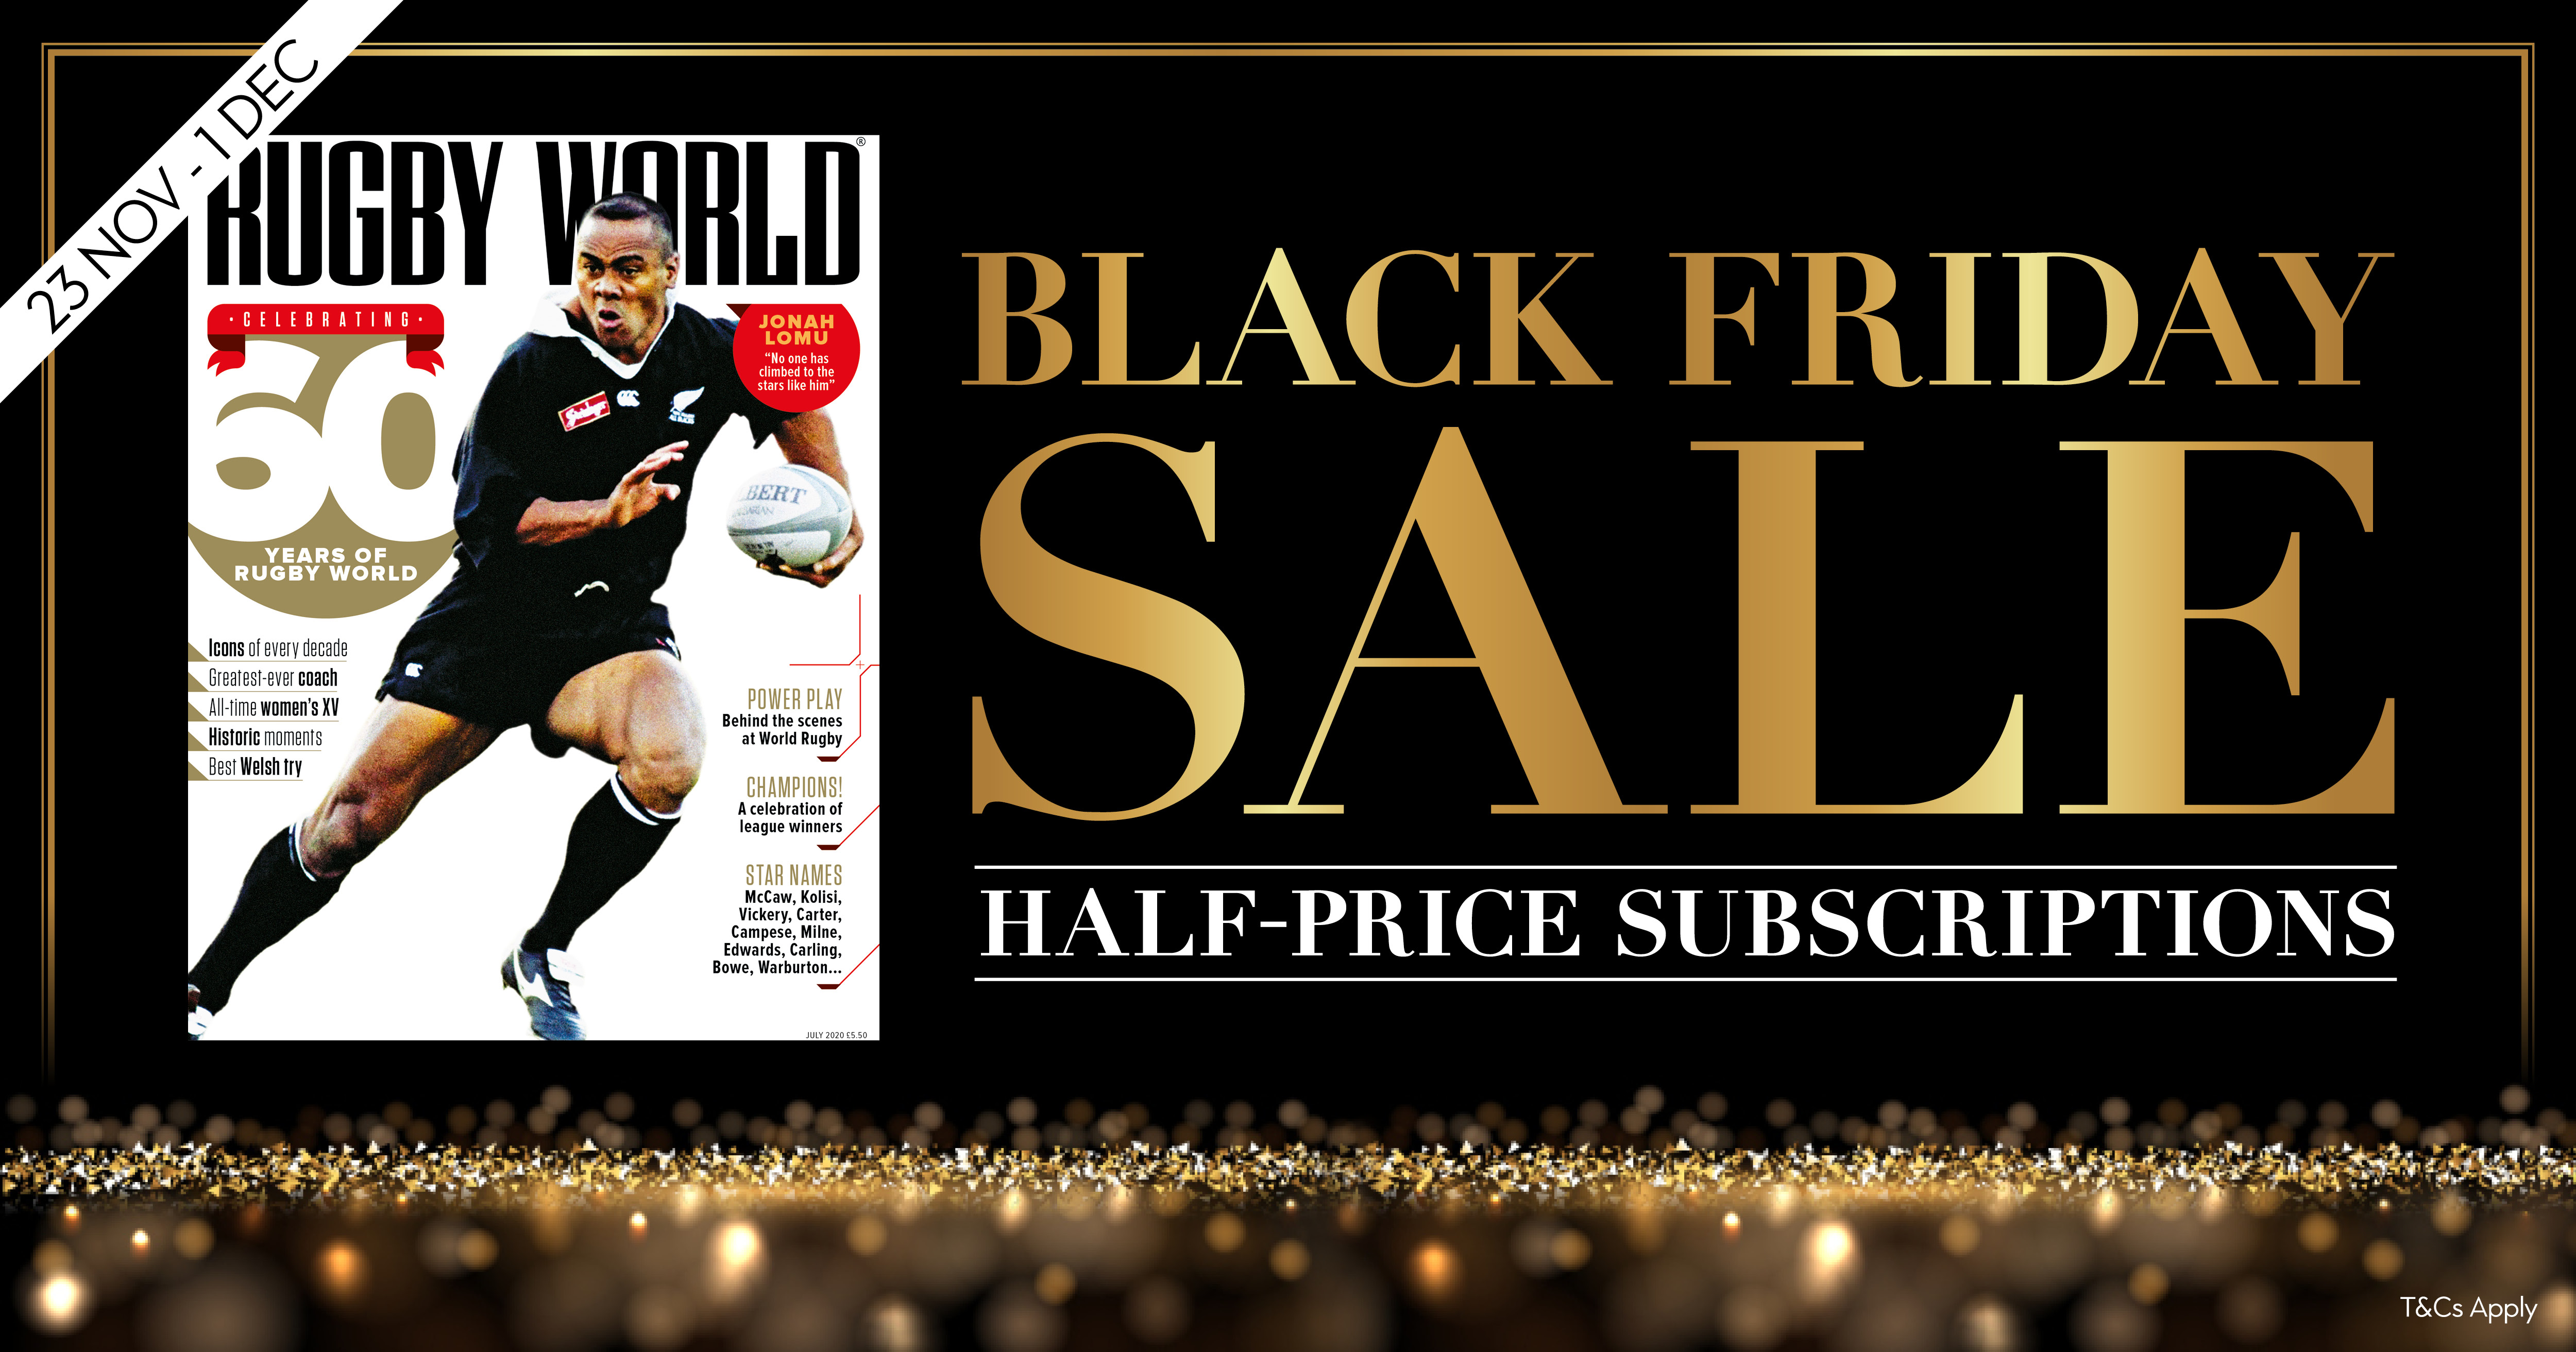 Black Friday Sale: Save 50% on a Rugby World magazine subscription